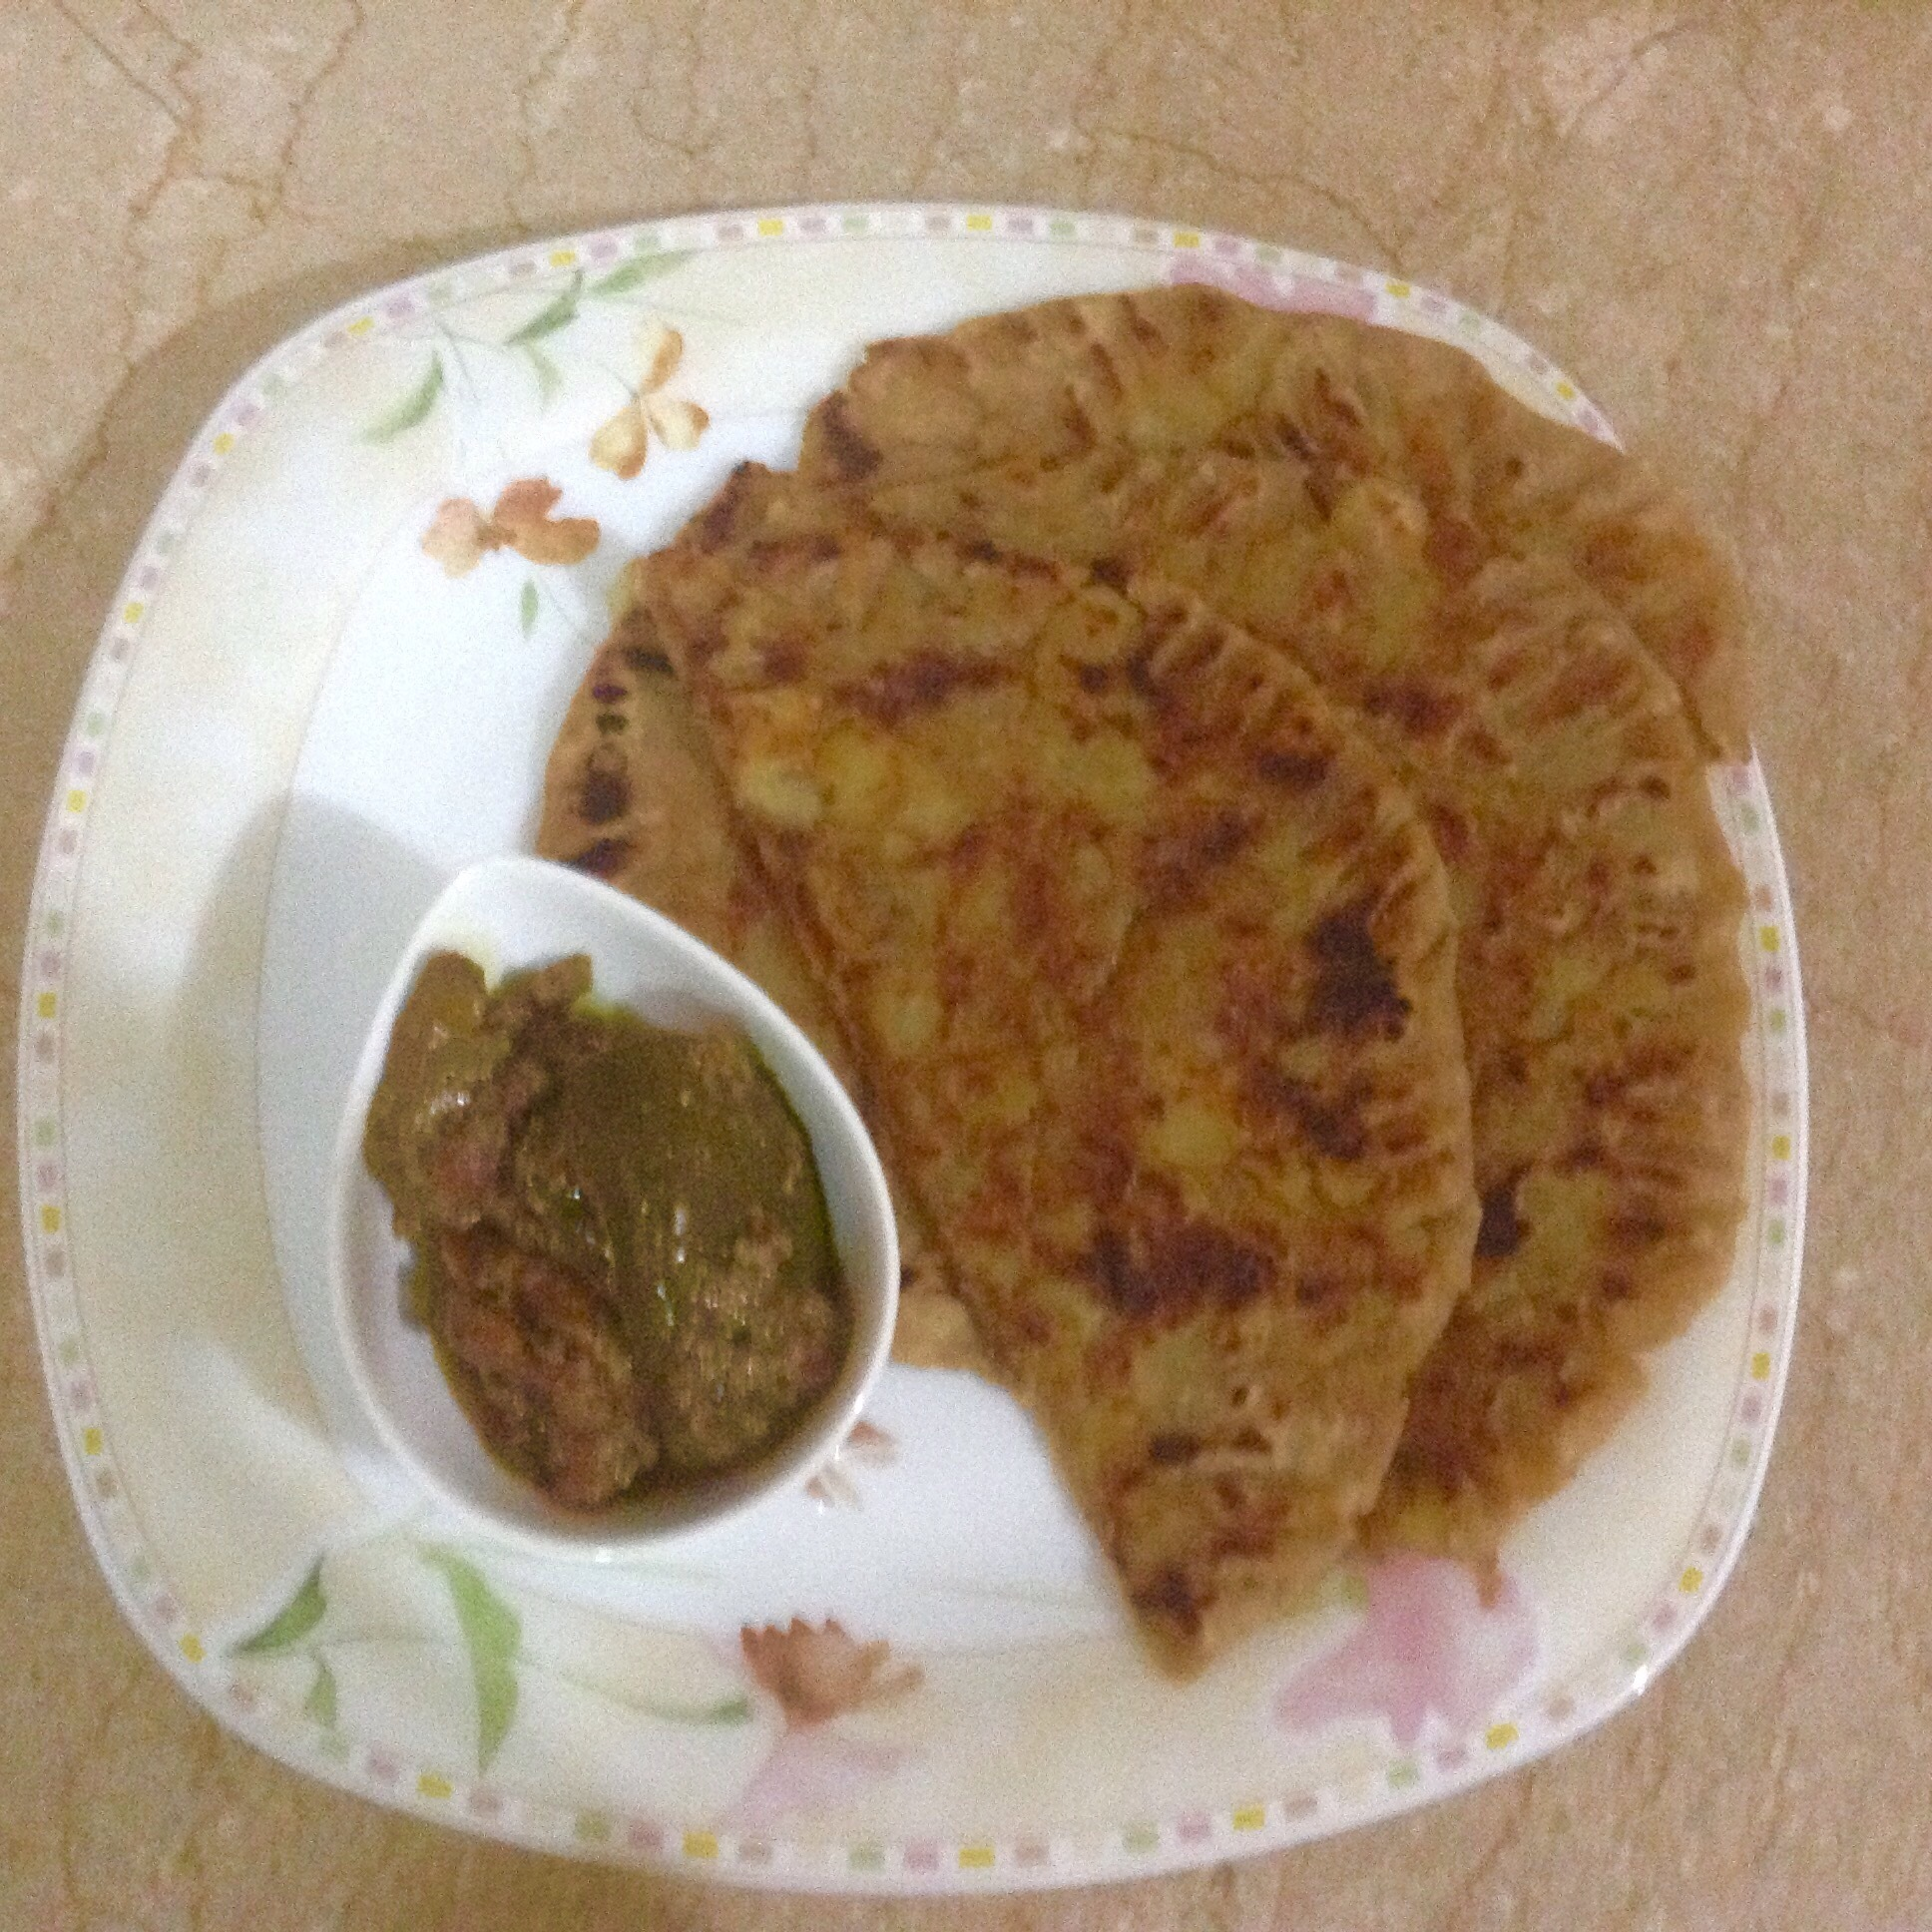 Aaloo ka paratha(potato stuffed flat bread)